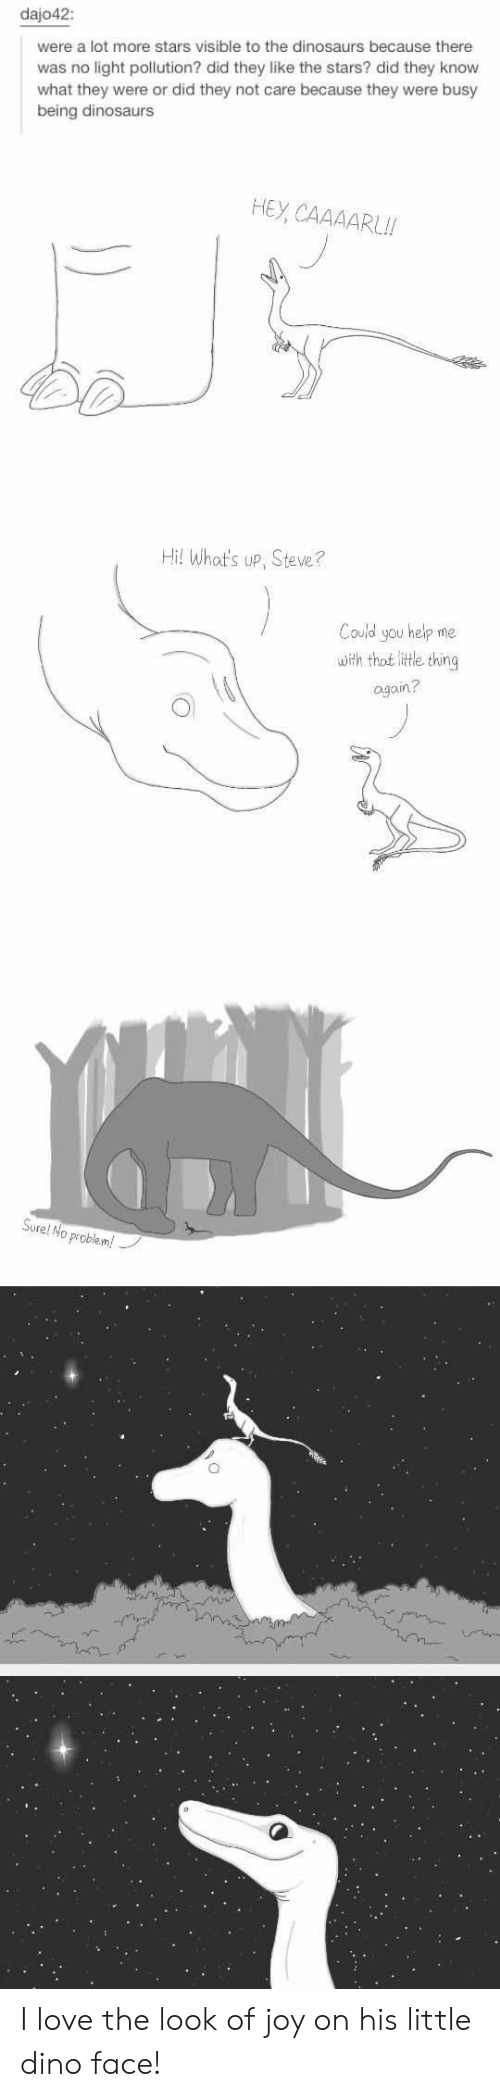 Love, Thot, and Dinosaurs: dajo42:  were a lot more stars visible to the dinosaurs because there  was no light pollution? did they like the stars? did they know  what they were or did they not care because they were busy  being dinosaurs  HEY CAAAARL  Hi! What's up, Steve?  Could you help me  with thot little thing  again?  Sure!  No problem! I love the look of joy on his little dino face!